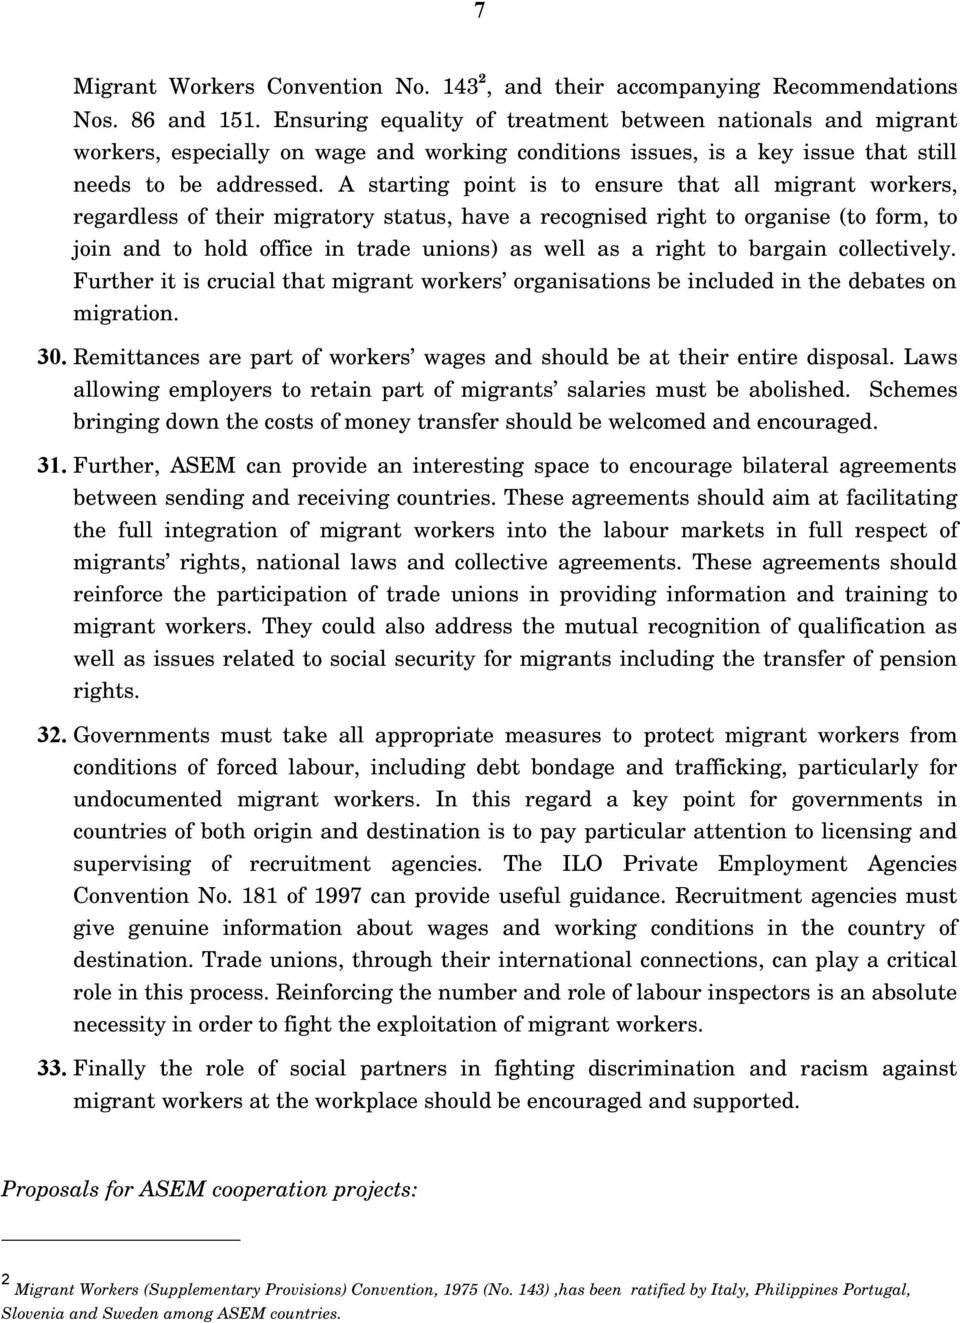 A starting point is to ensure that all migrant workers, regardless of their migratory status, have a recognised right to organise (to form, to join and to hold office in trade unions) as well as a